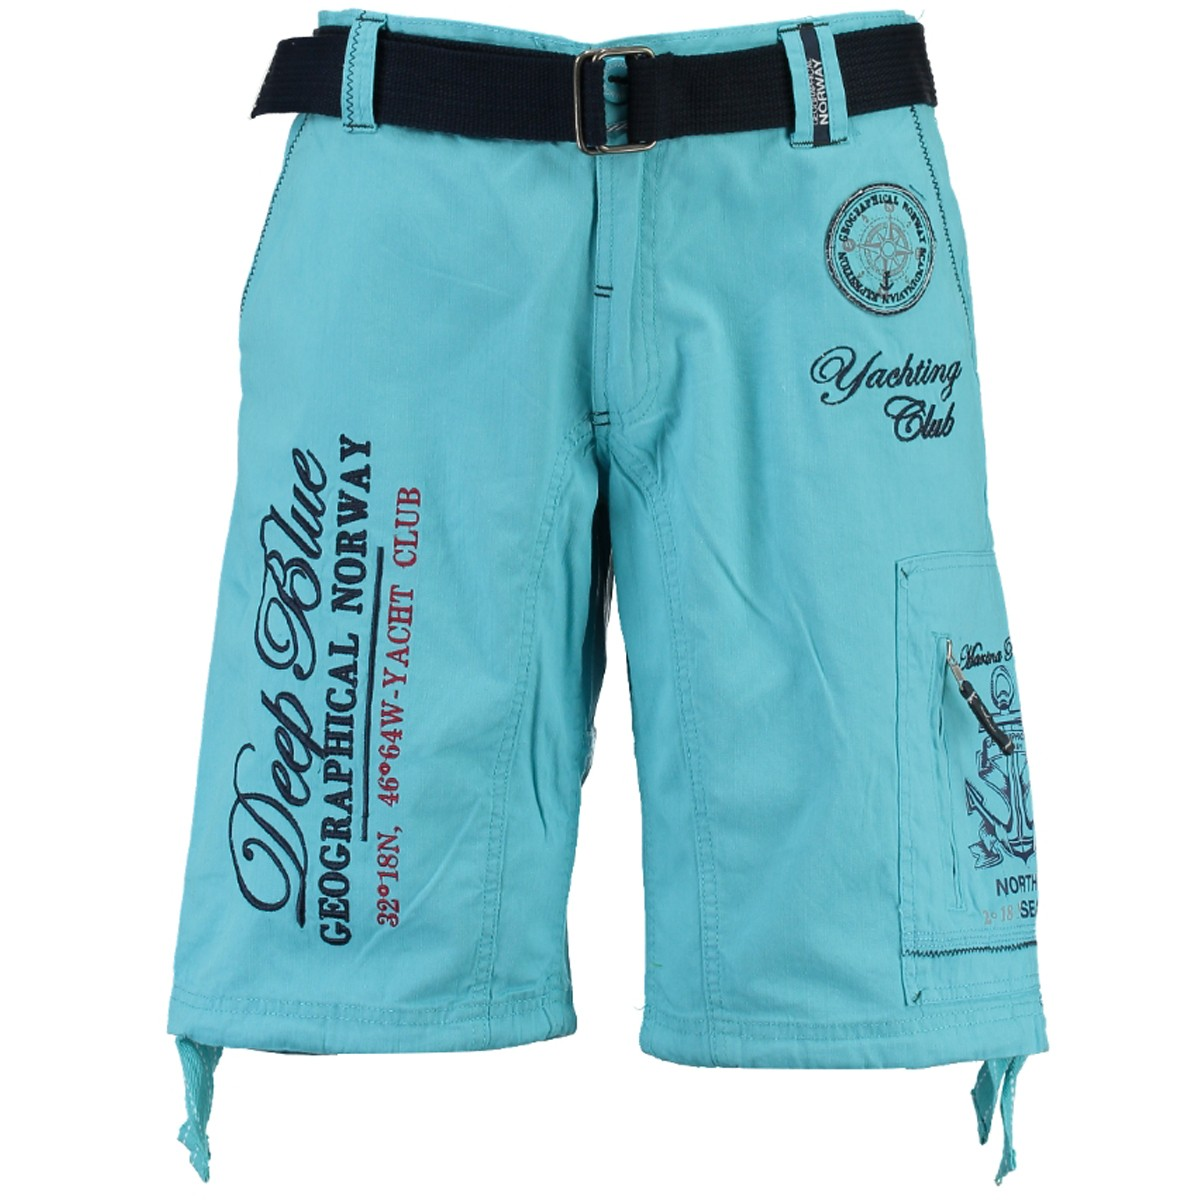 bermuda homme Pallancre - bleu turquoise - style yachting club